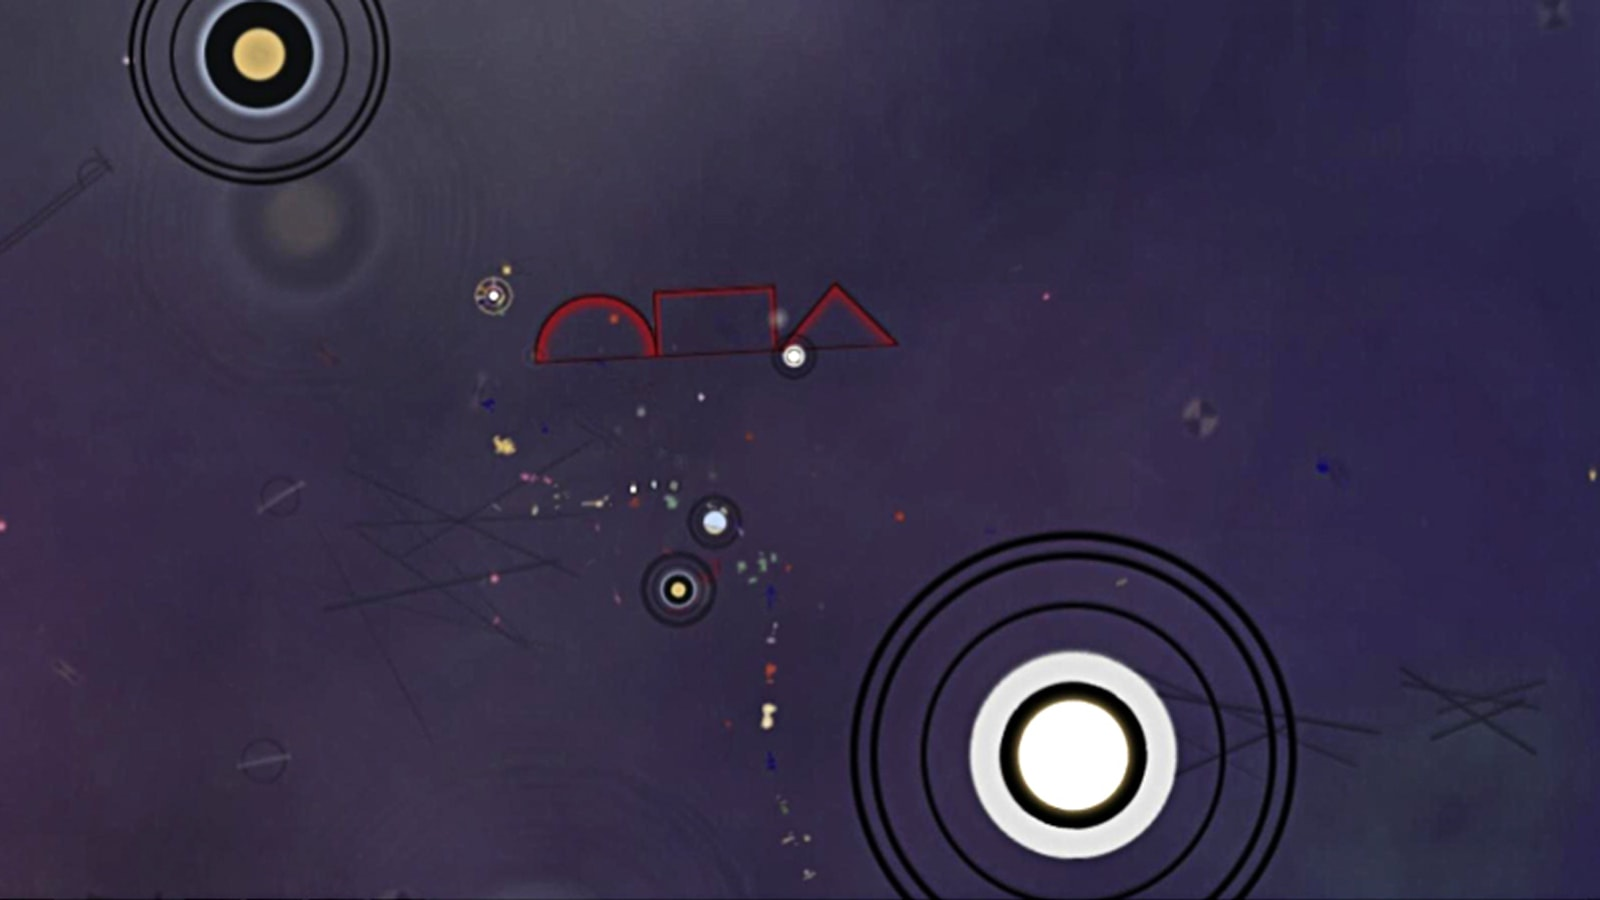 Two floating concentric circles flank a trail of small colorful shapes on a dark purple background.